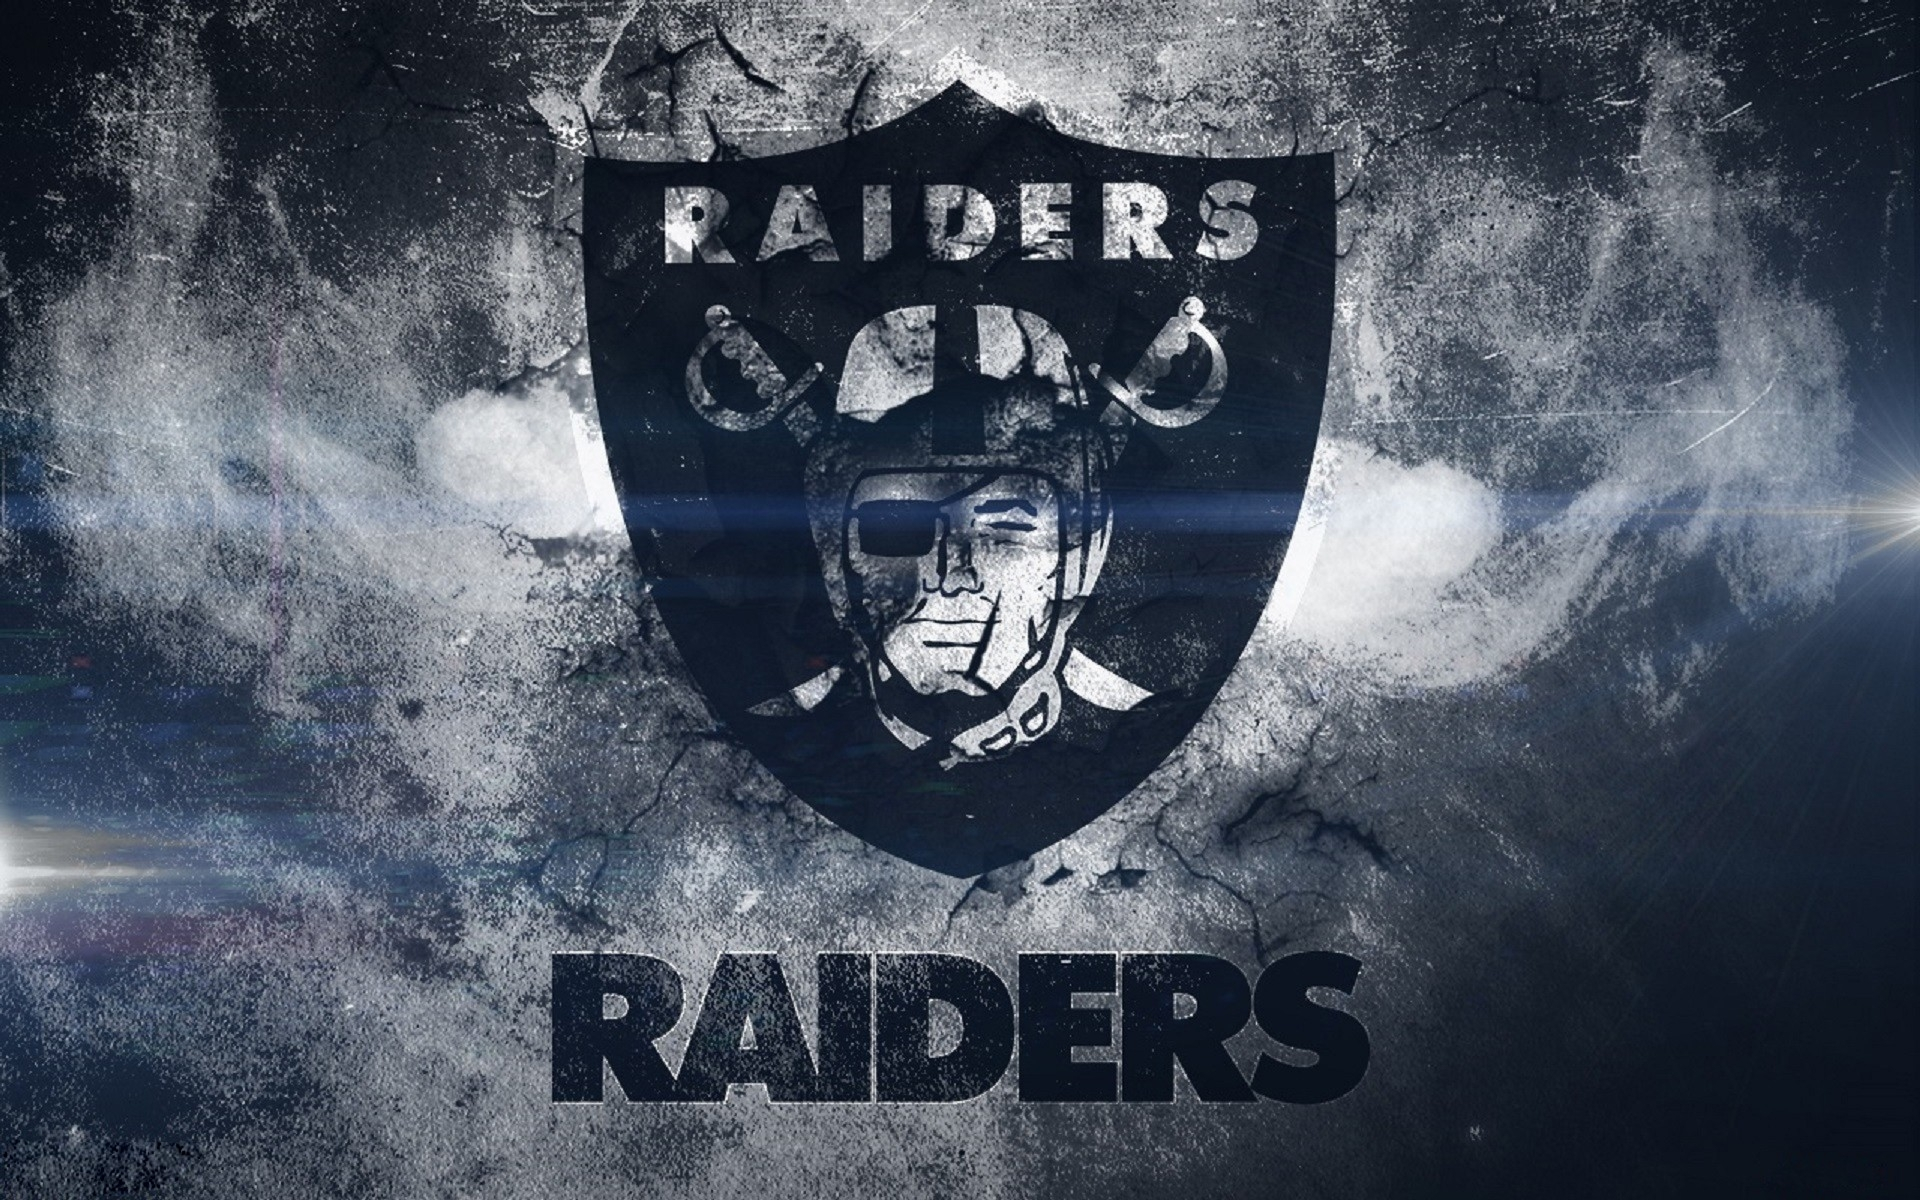 oakland raiders wallpaper ·① download free awesome full hd